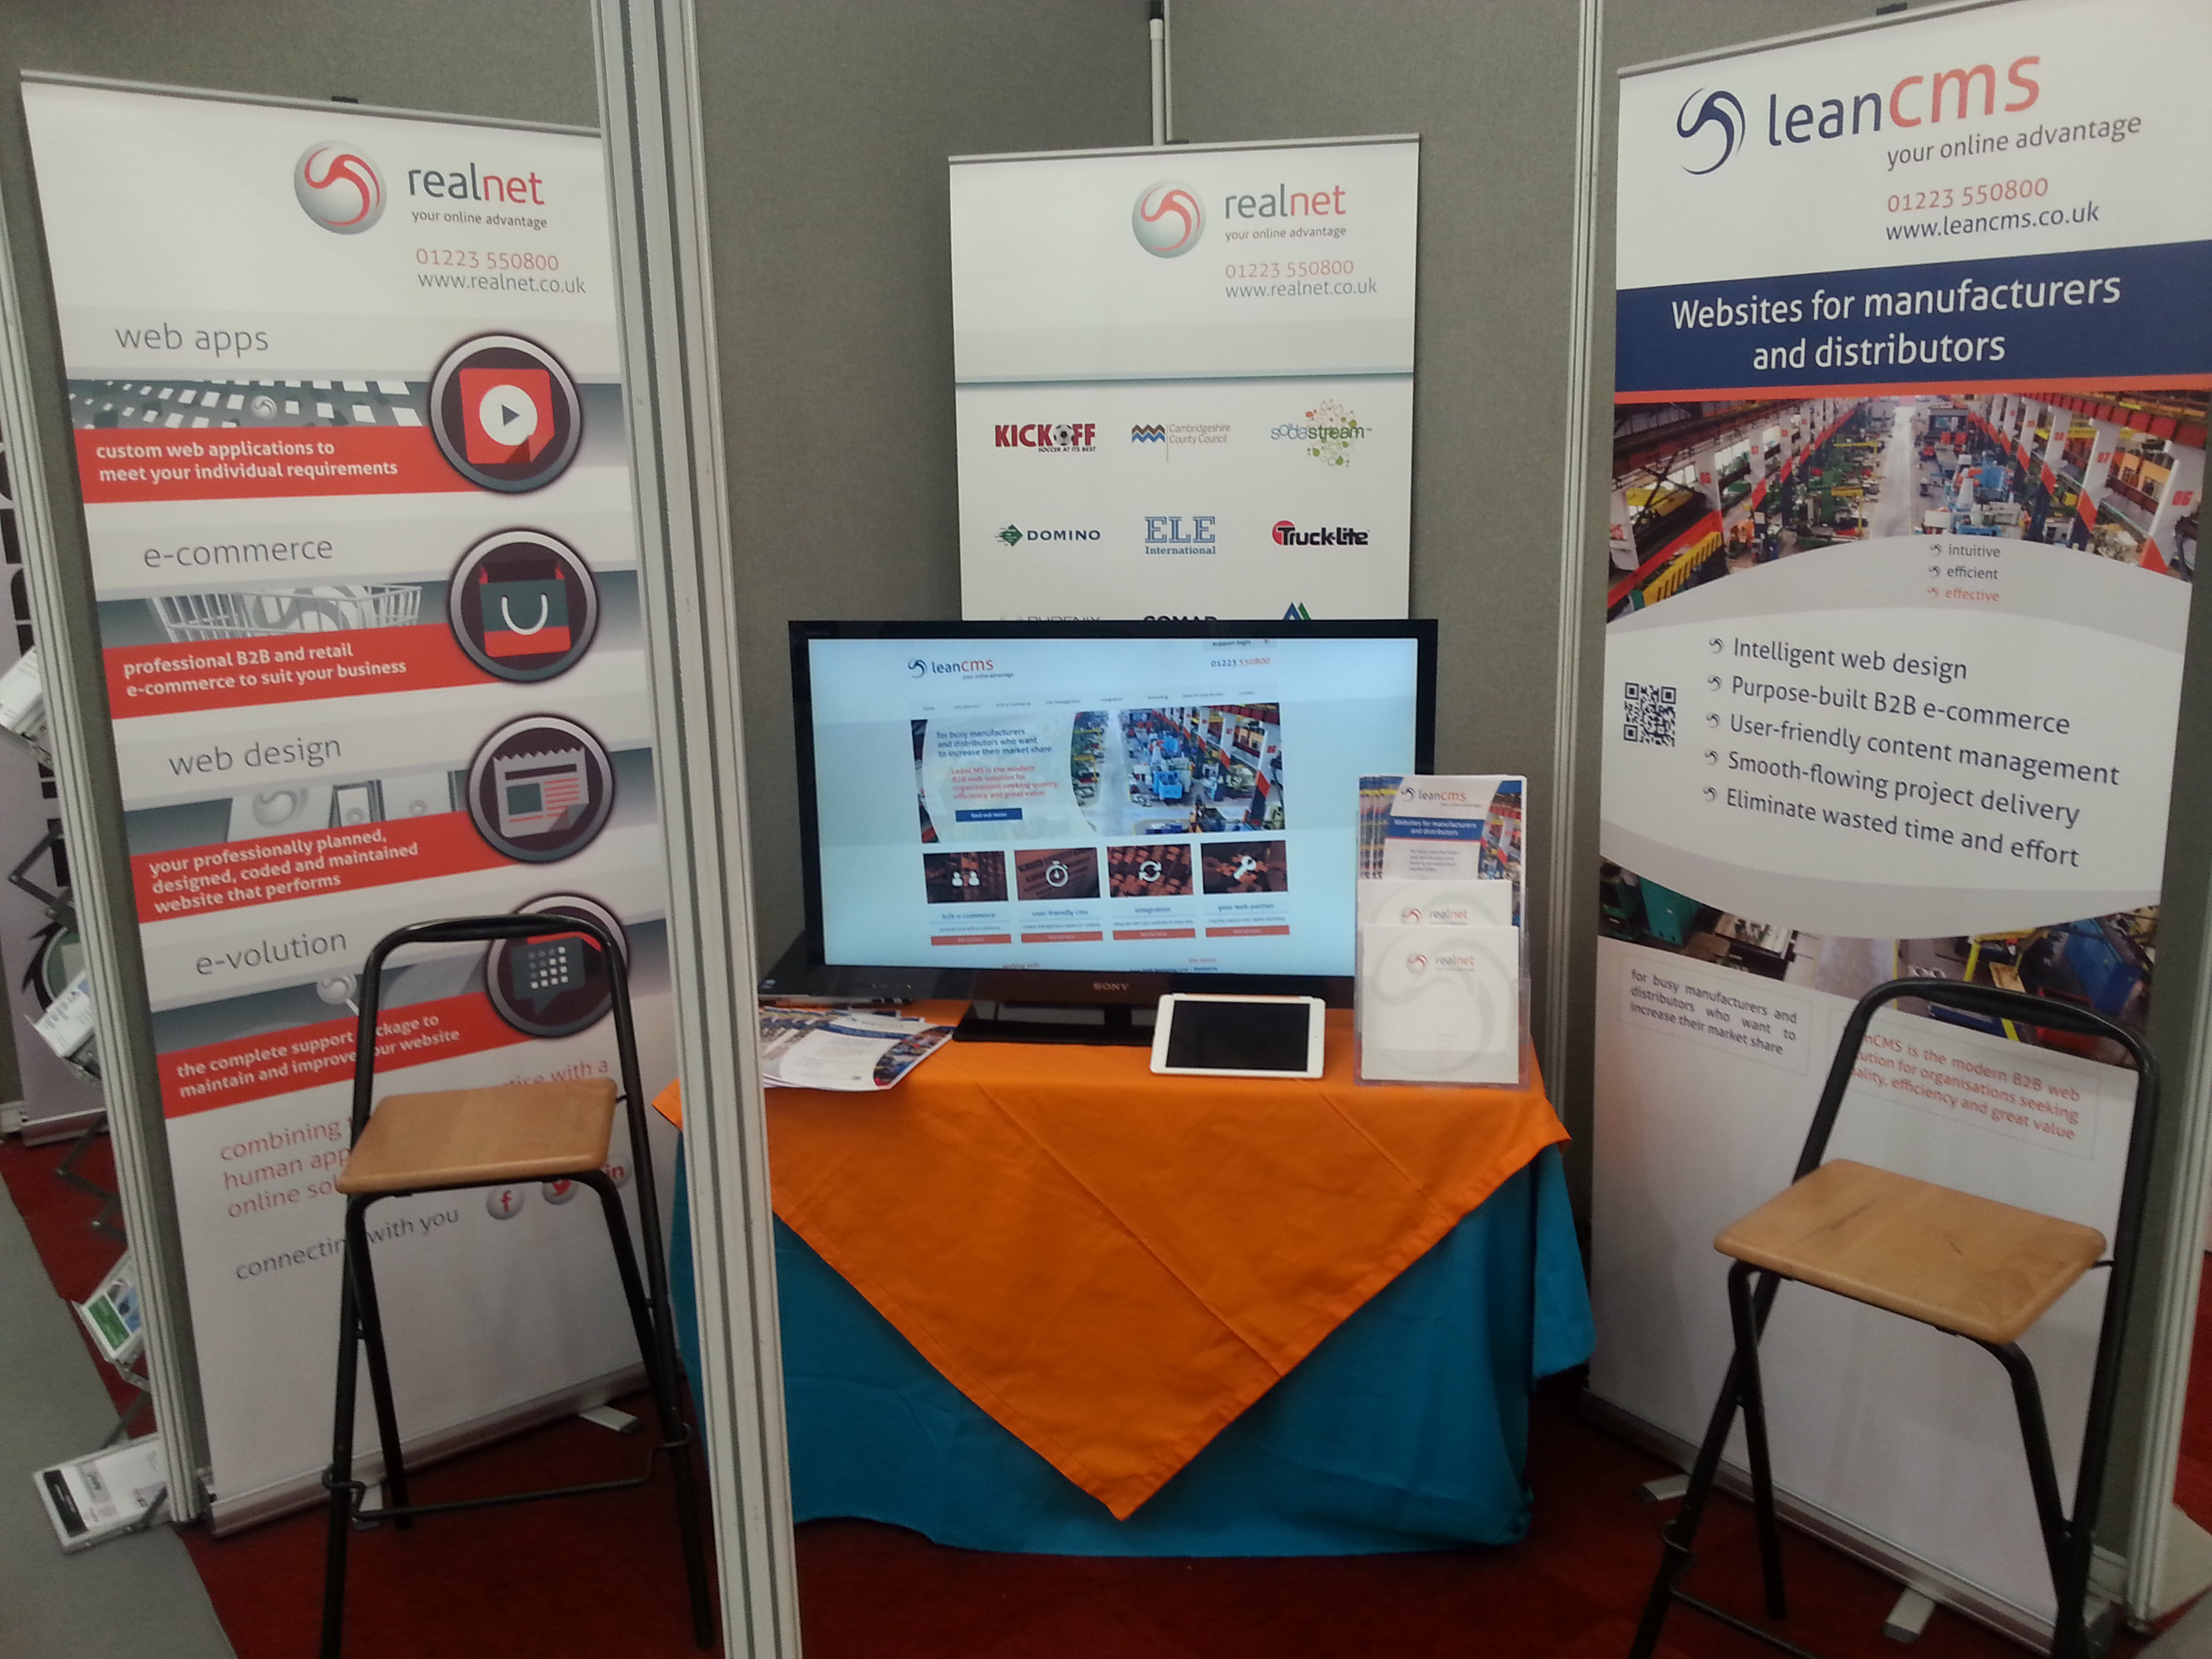 Realnet are exhibiting the LeanCMS platform at the Southern Manufacturing & Electronics Exhibition